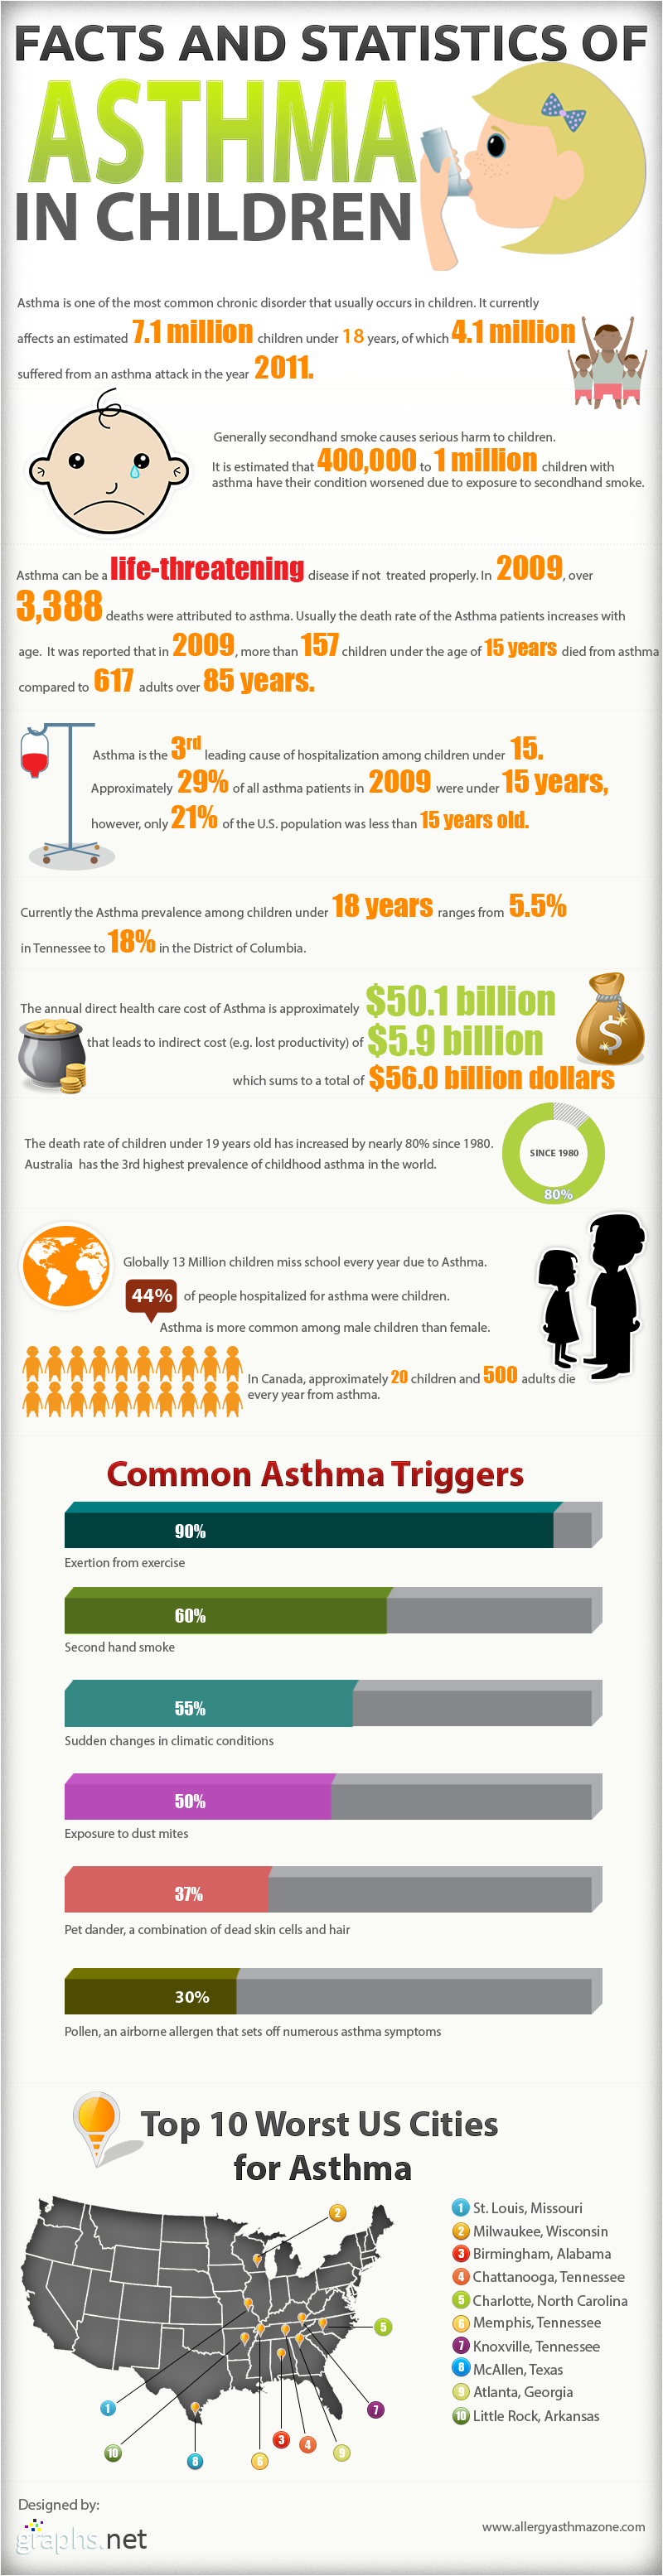 Important Facts about Asthma in Children